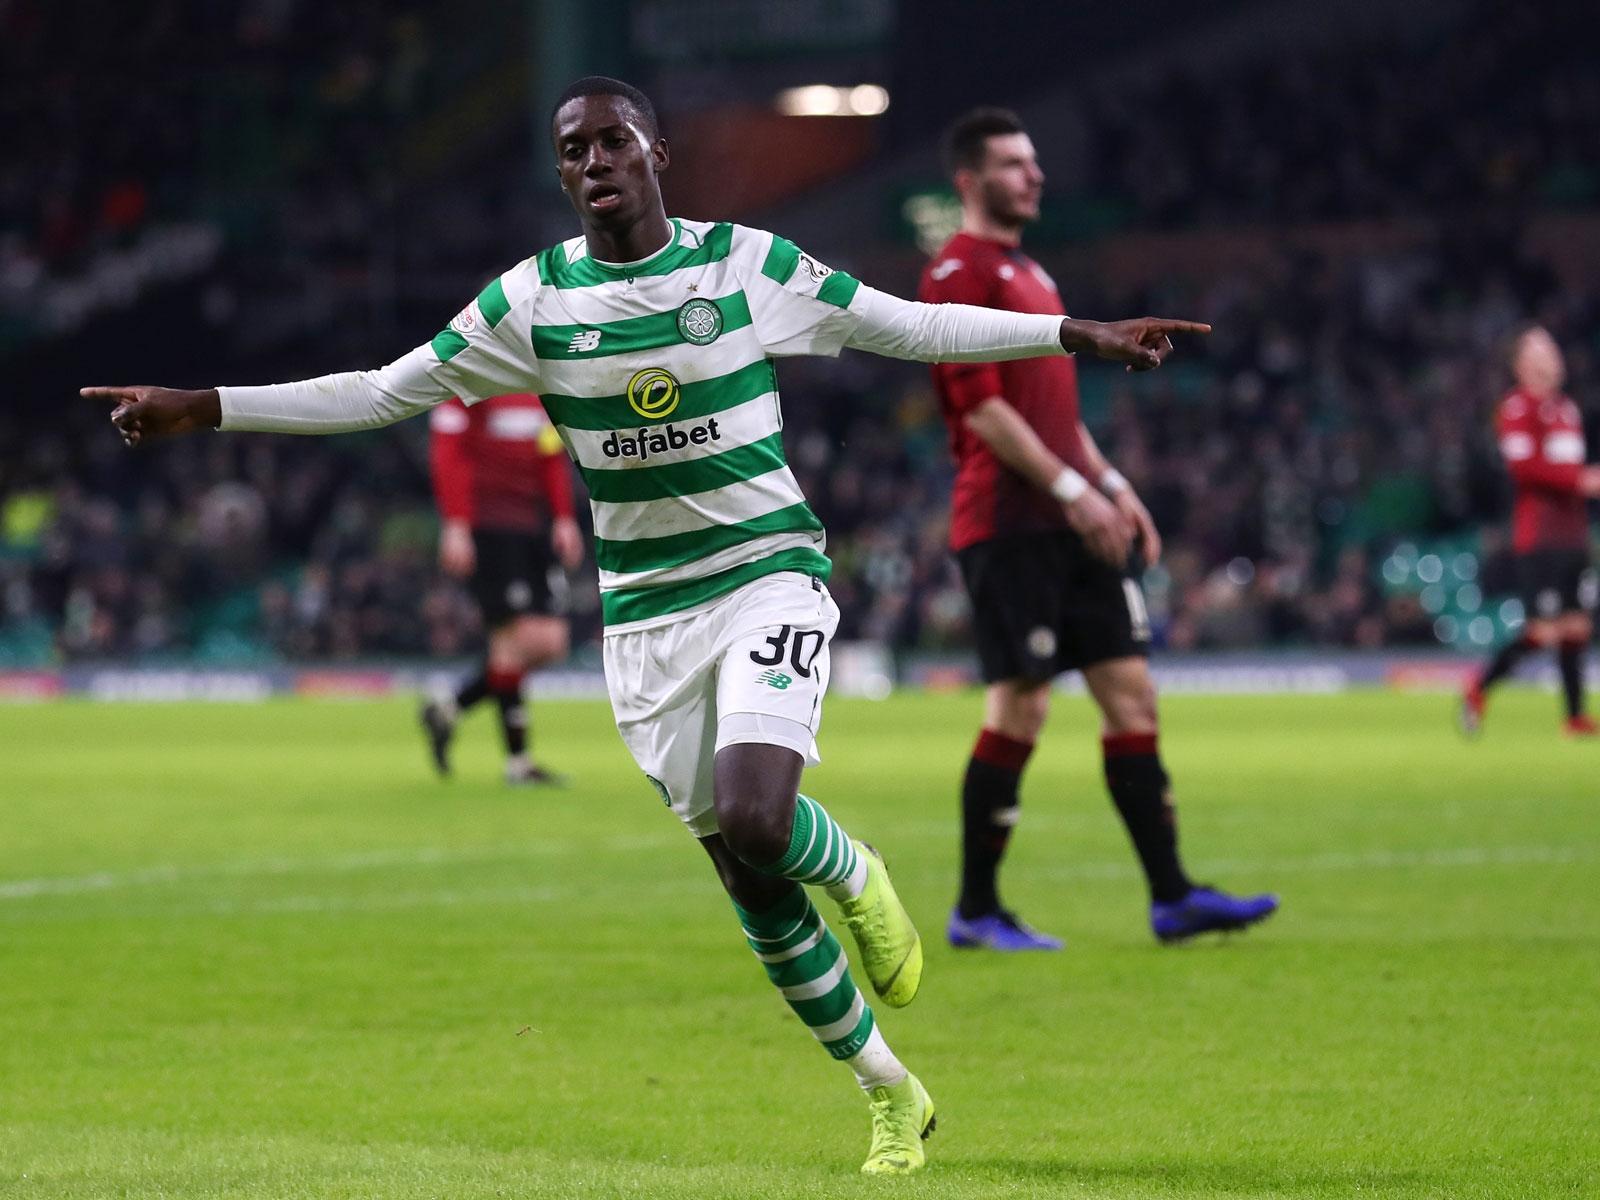 Tim Weah scores for Celtic vs. St. Mirren